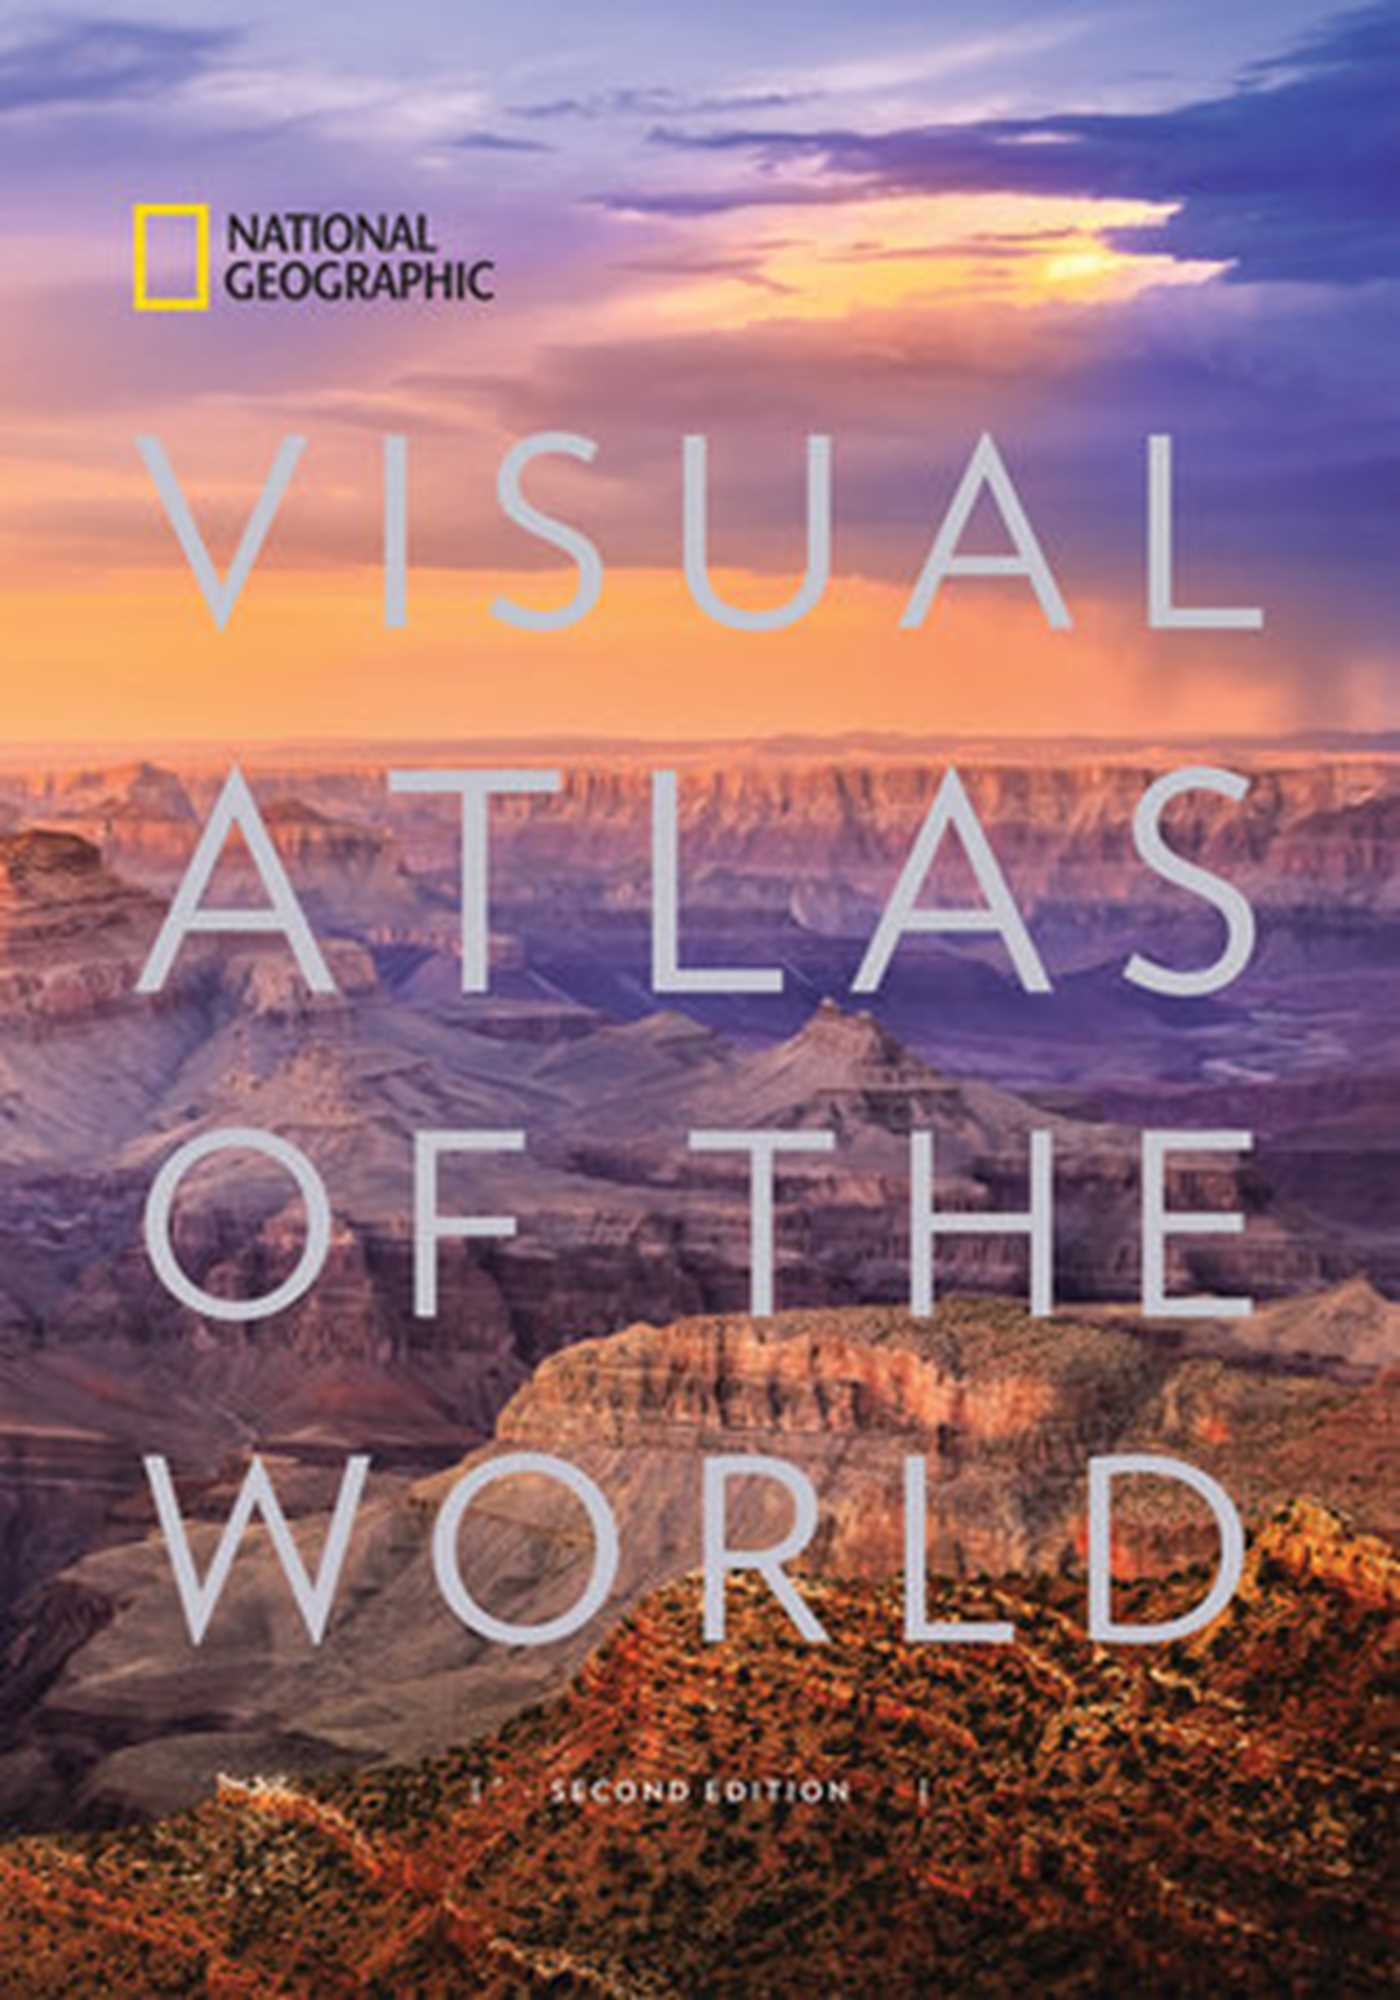 Visual atlas of the world 9781426218385 hr